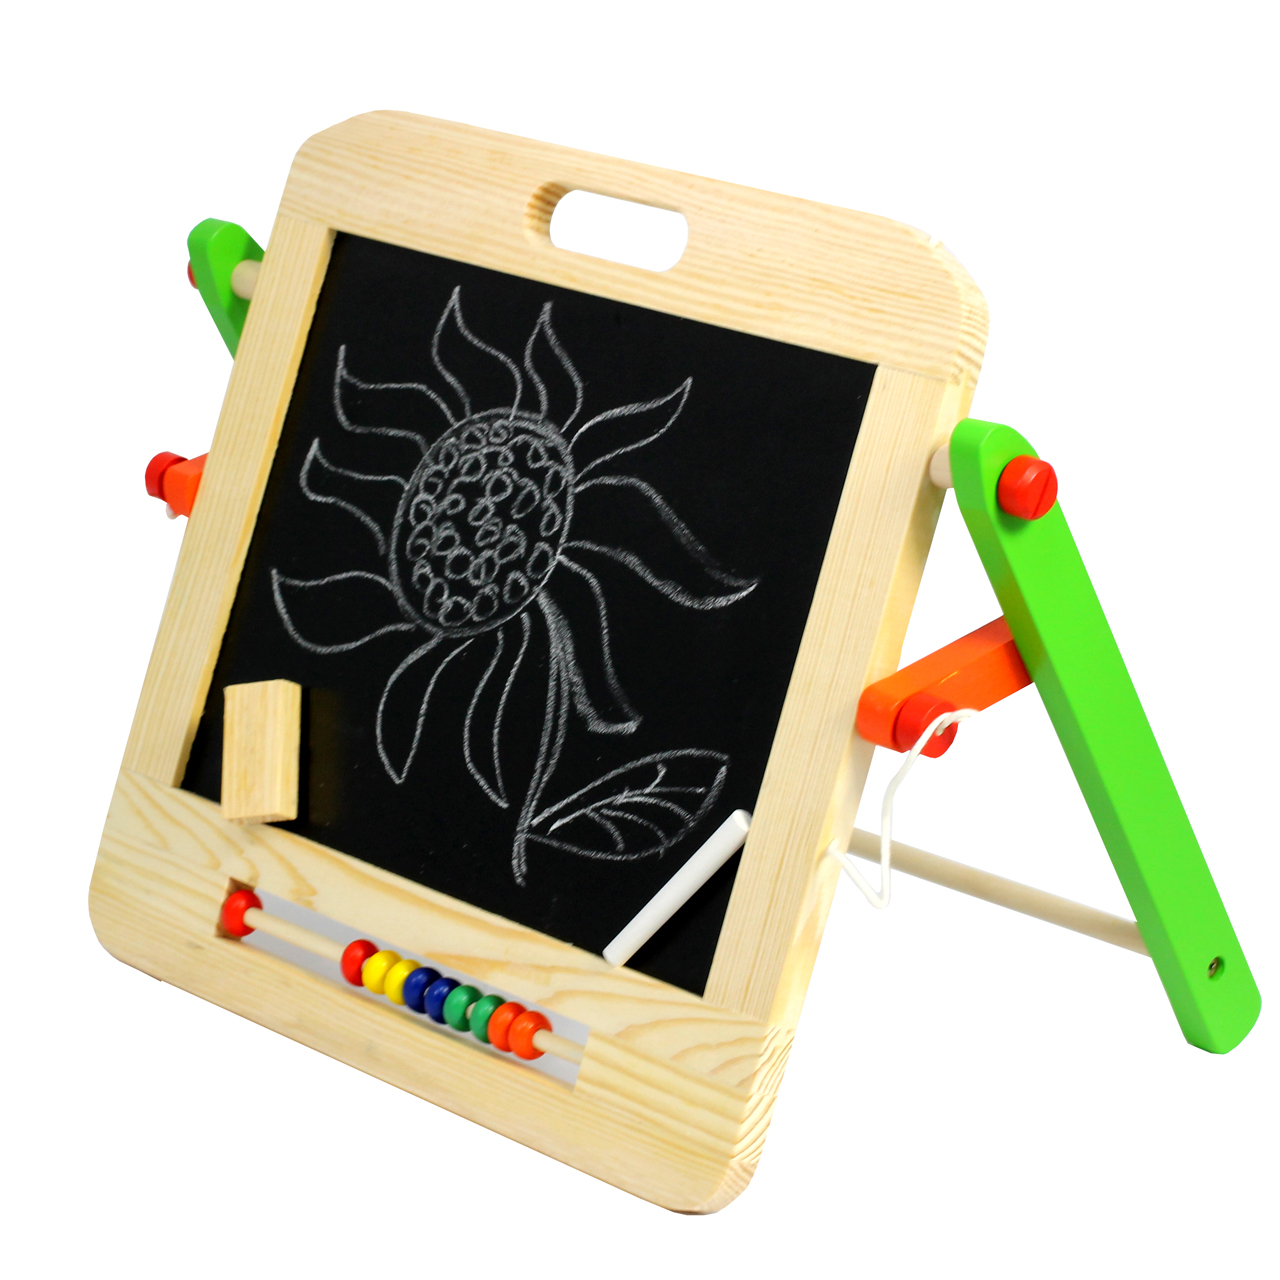 2 in 1 options for the early years, one side for chalkboard option.